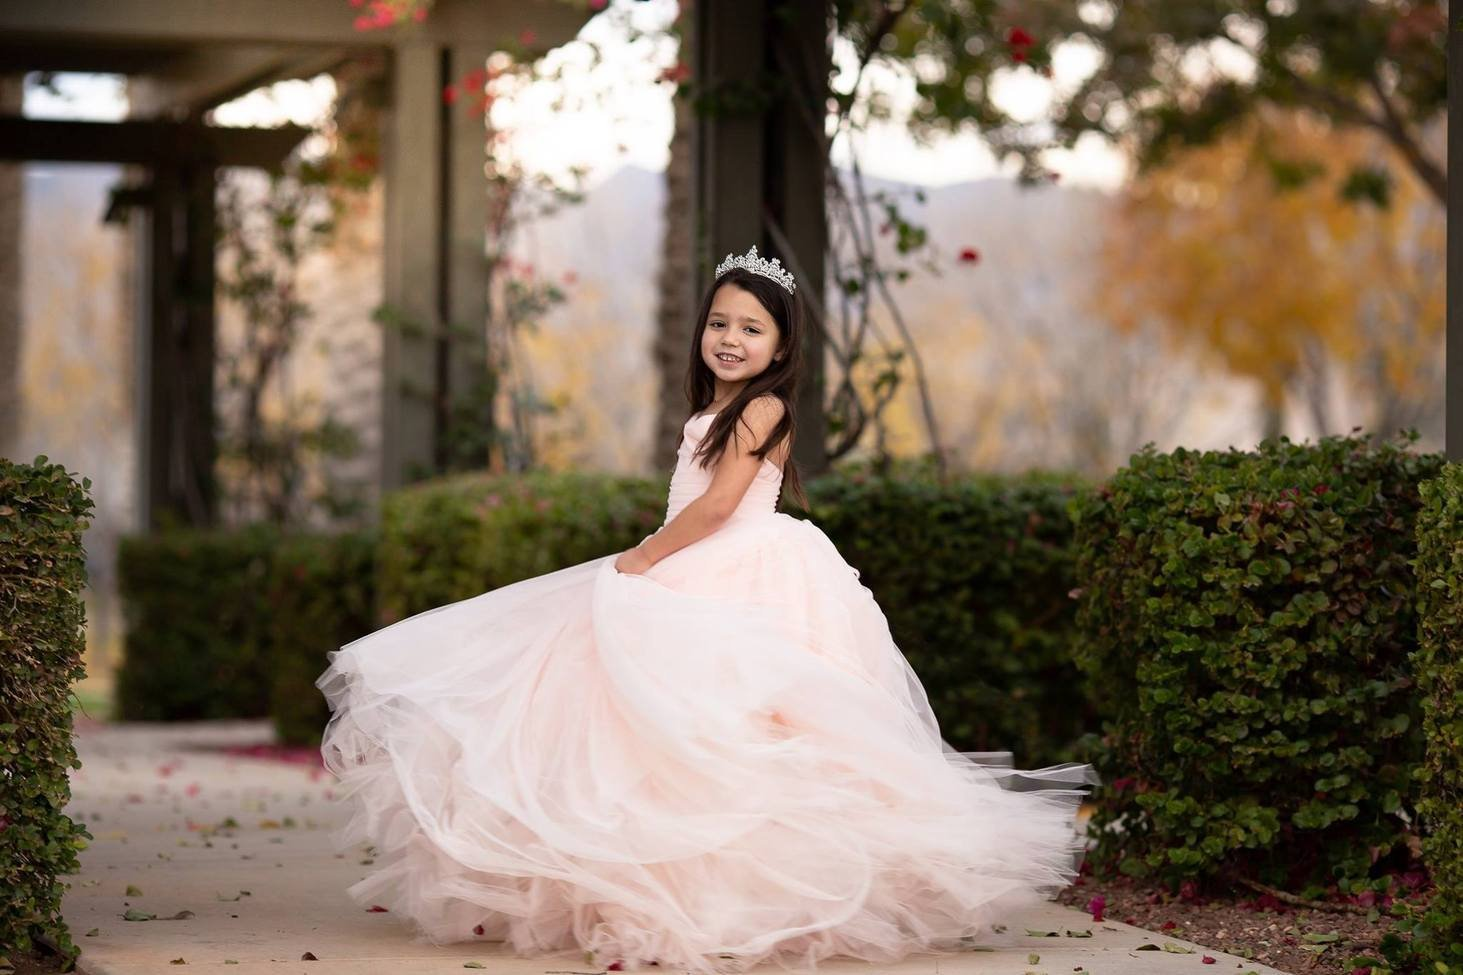 Gown in Blush - Flower Girl Dress, Pageant Dress, Photoshoot Dress.jpg